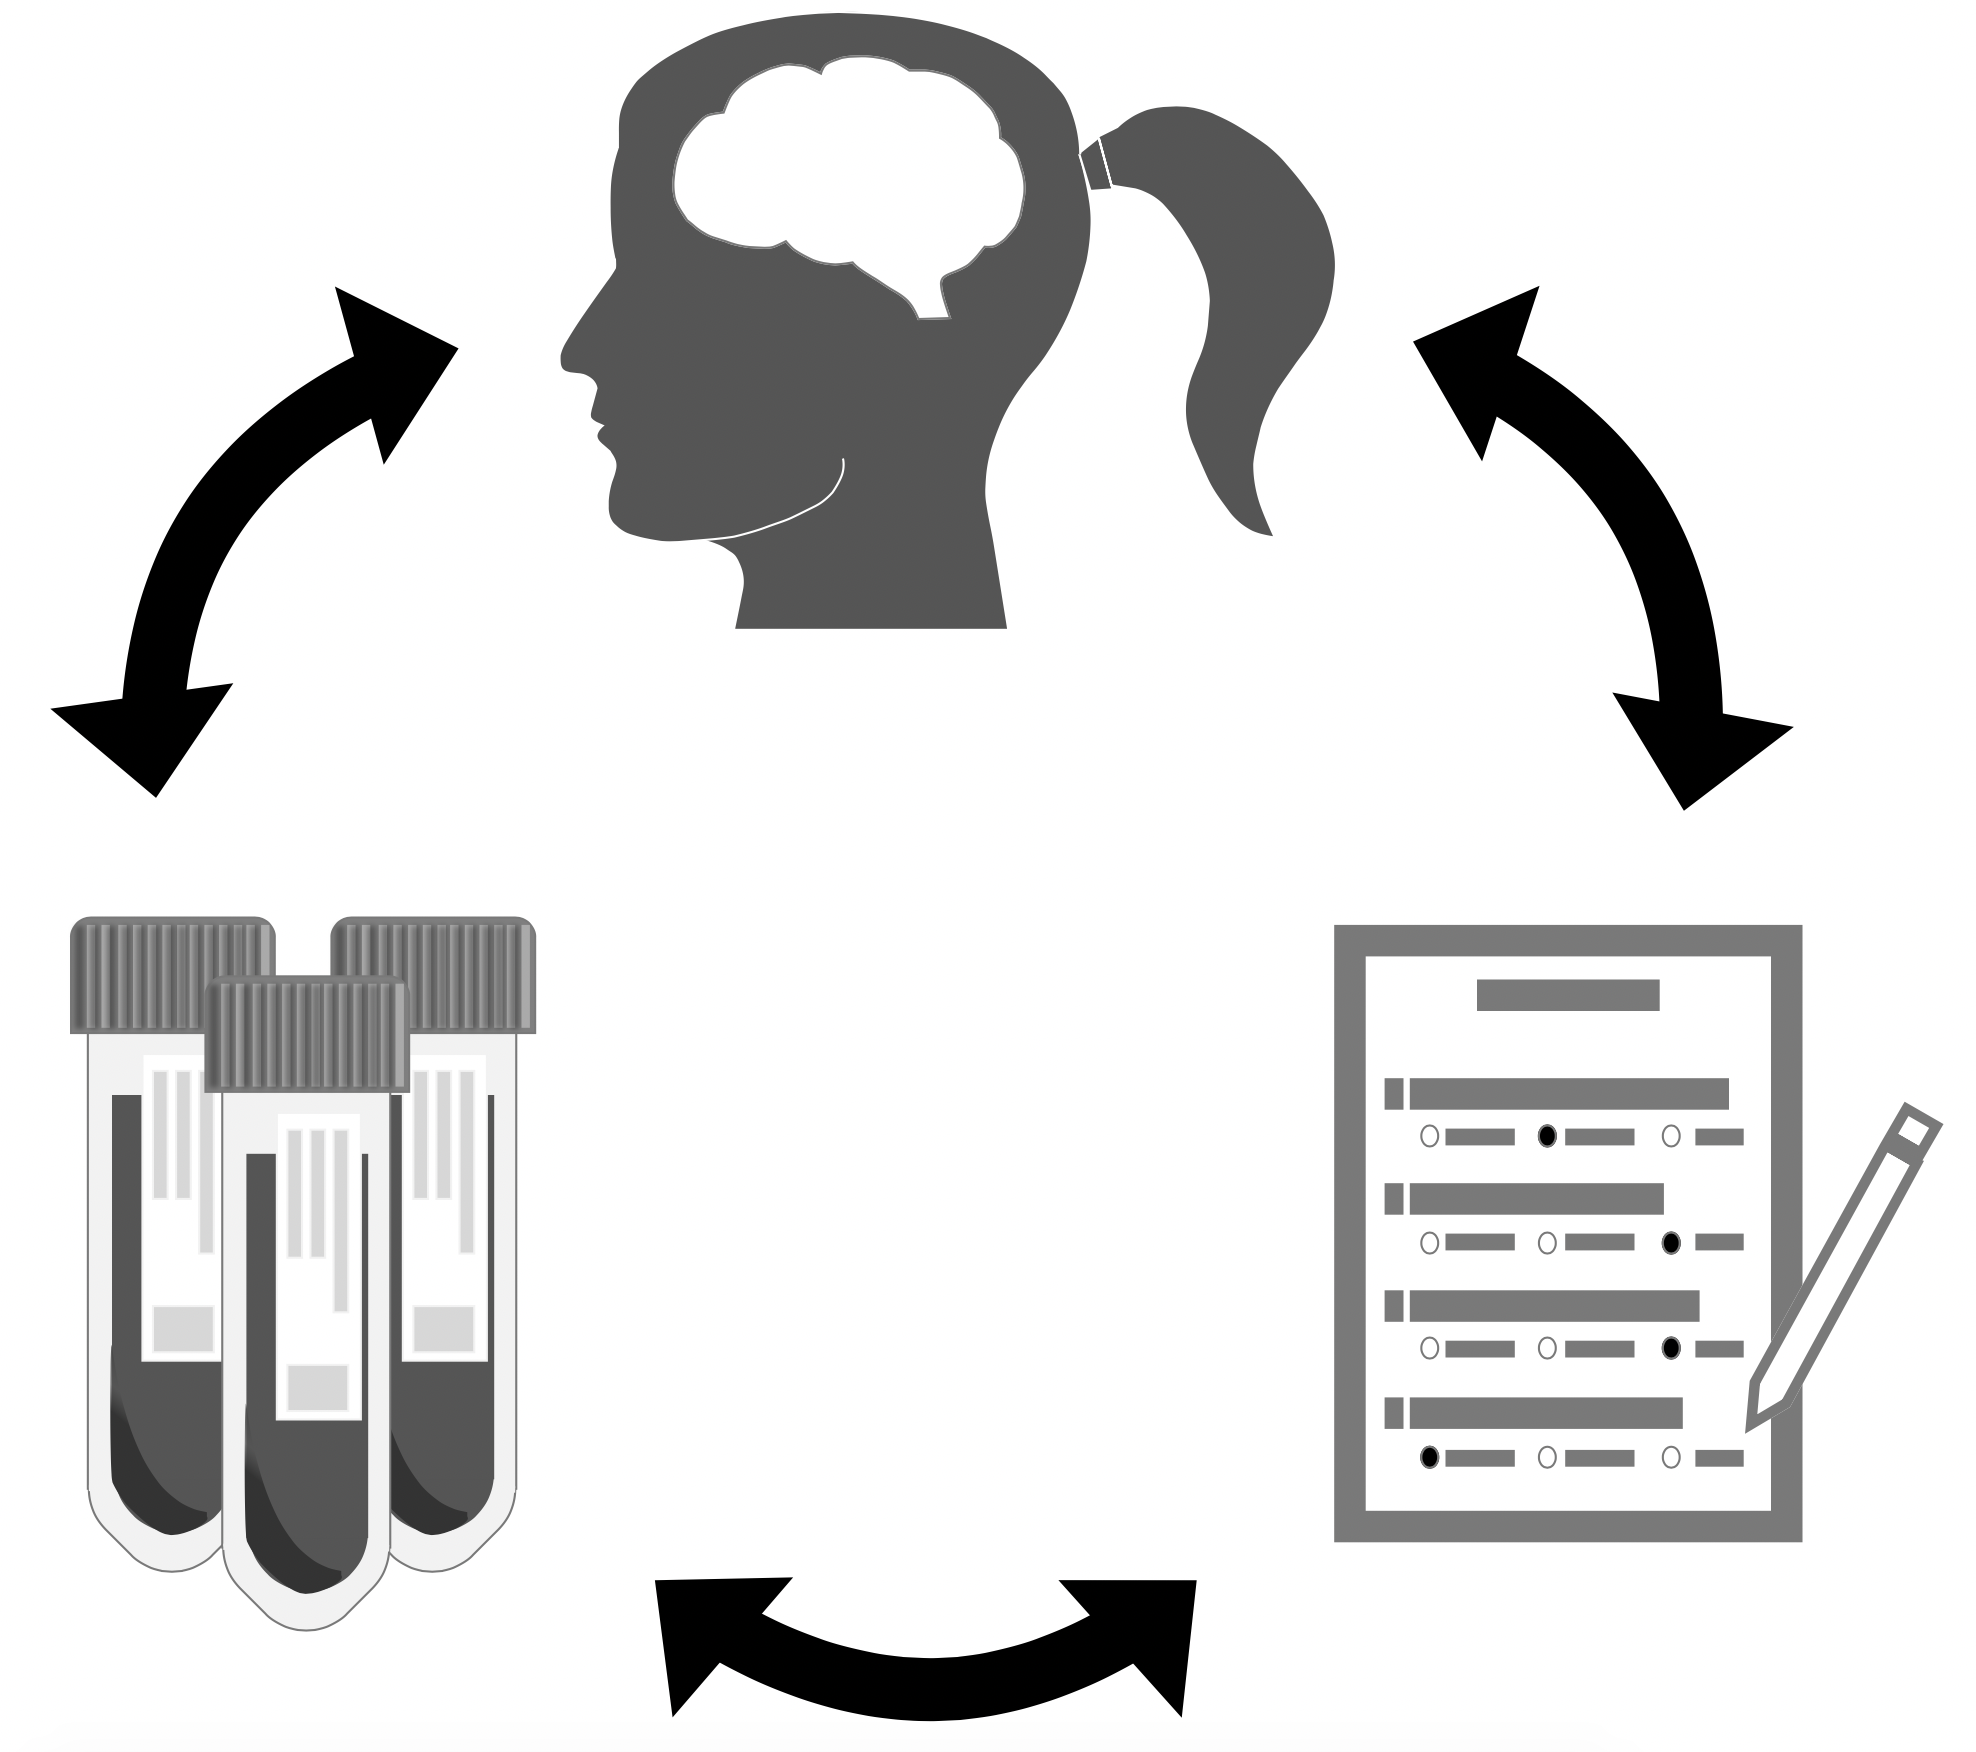 An illustration of a brain, experimental samples, and a survey with arrows that connect the three symbols in a co-dependent fashion